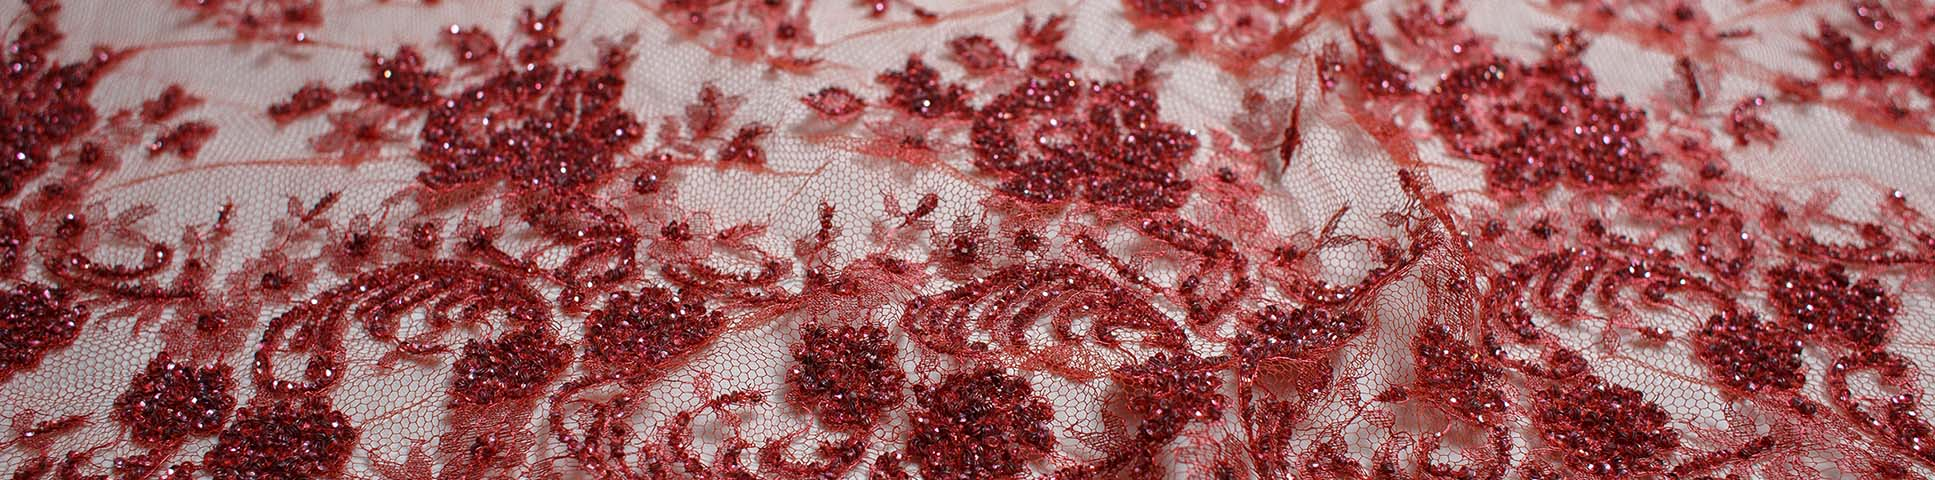 Embroidered Chantilly lace